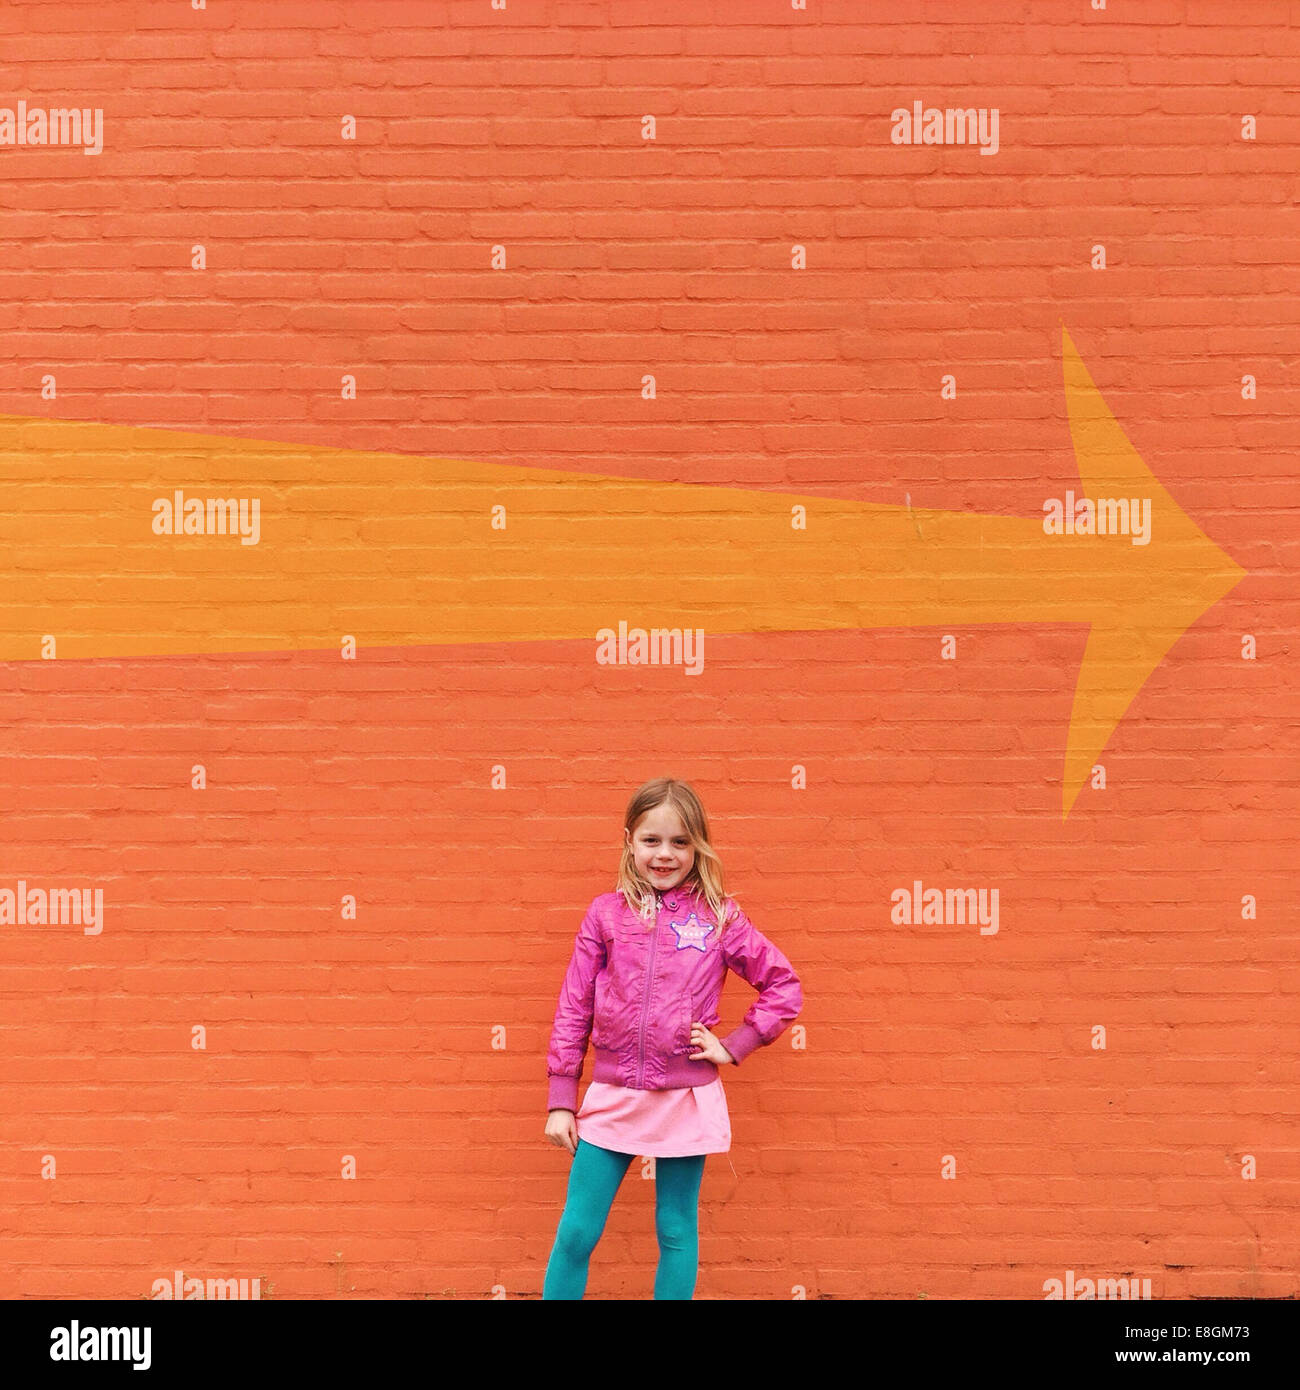 Portrait of Girl (12-13) standing in front of orange wall Photo Stock